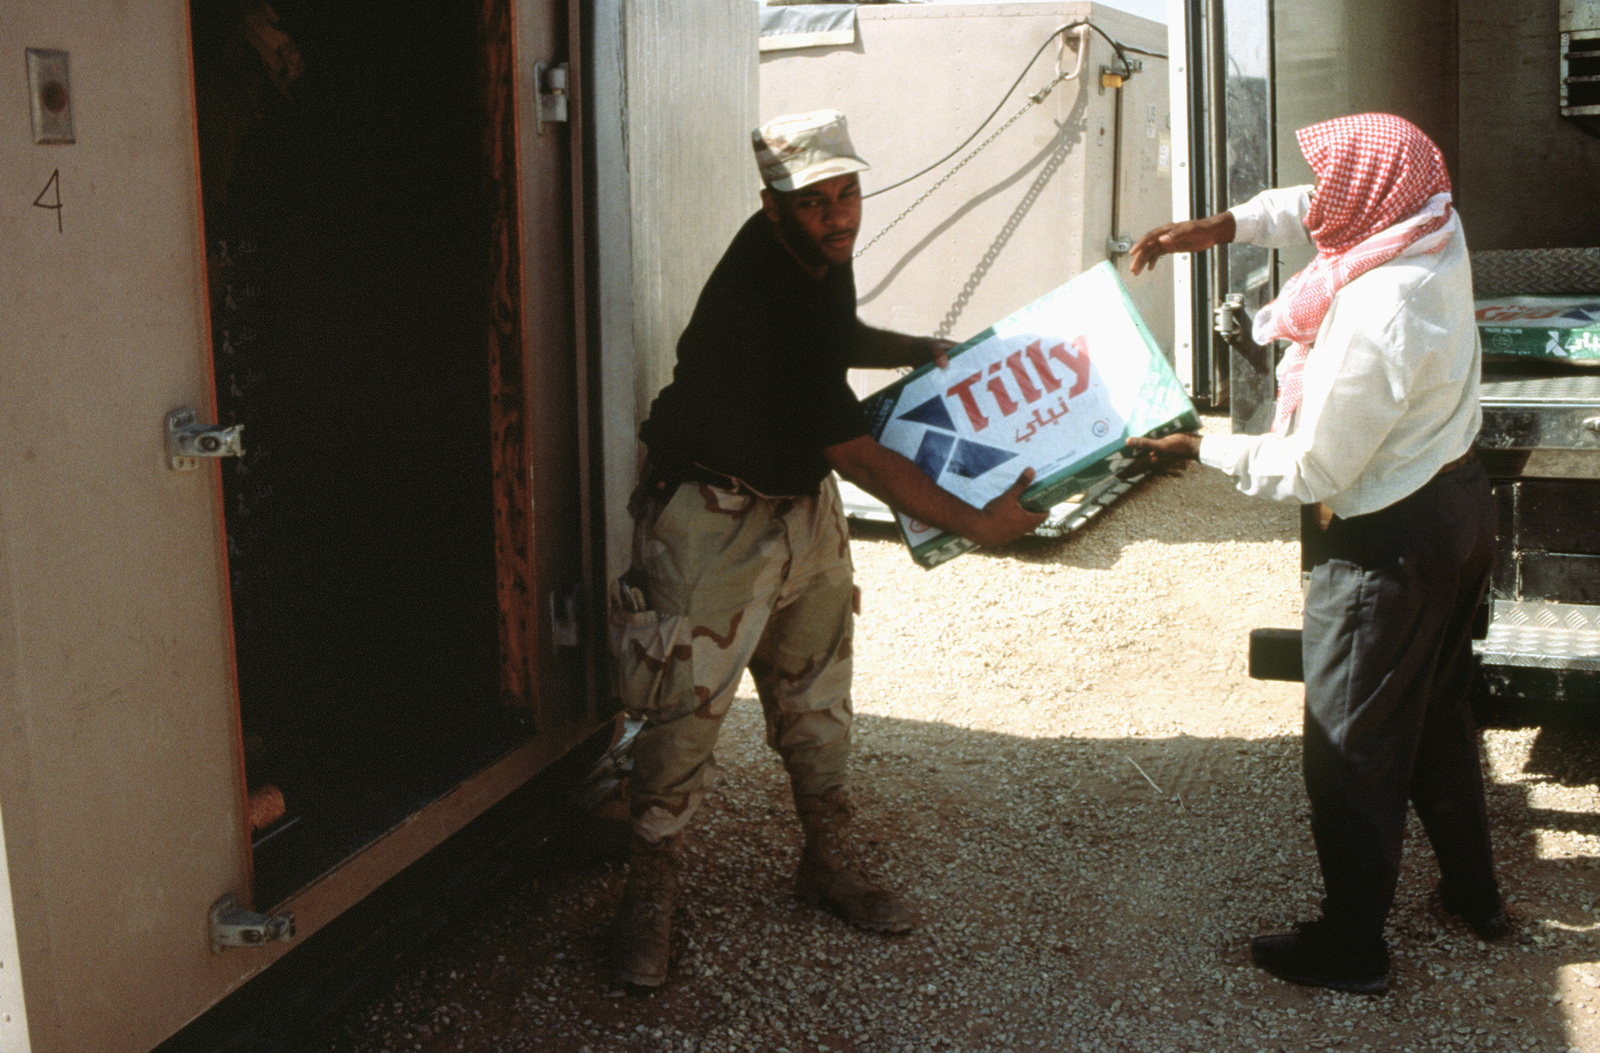 SENIOR AIRMAN Mike Correll, a Services SPECIALIST from the 99th Services Squadron, Nellis Air Force Base, Nevada restocks the refrigerated storage units with supplies at the Harvest Falcon dinning facility. A Saudi native assists in removing packages from the truck